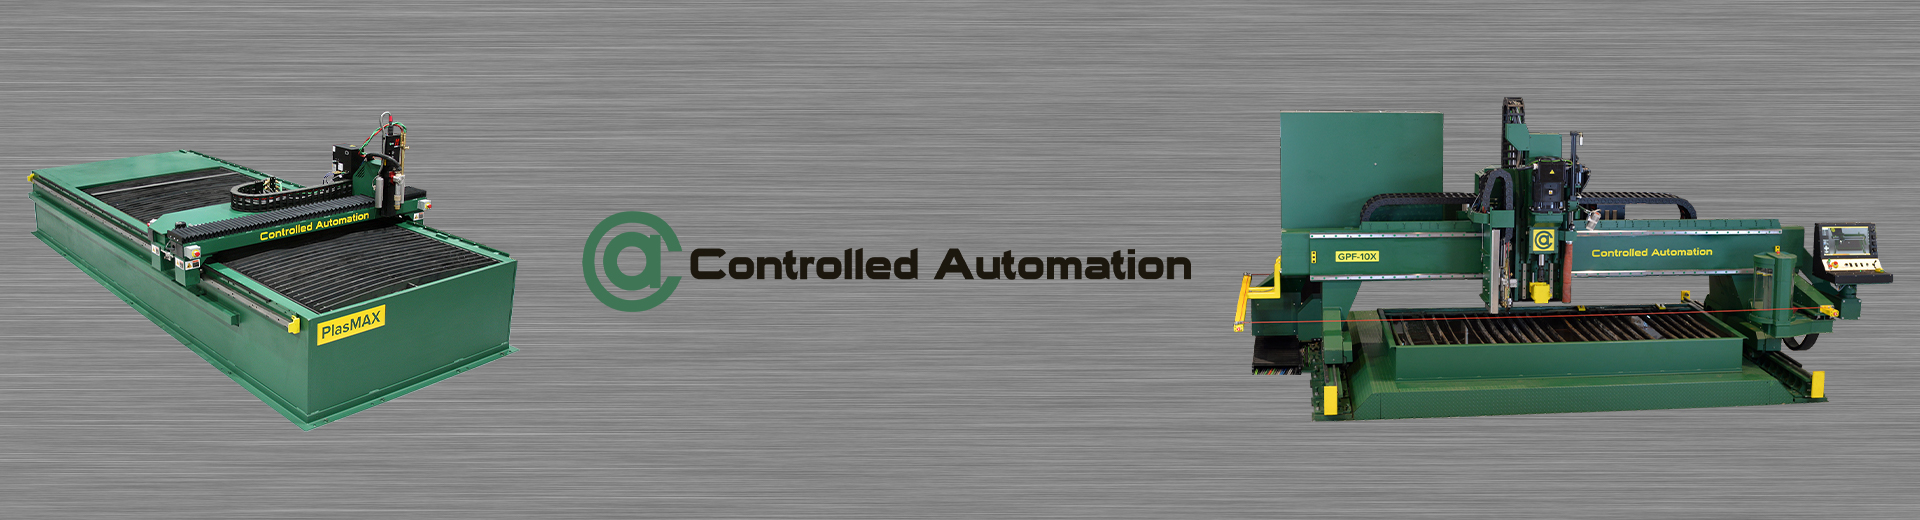 Controlled Automation Machinery